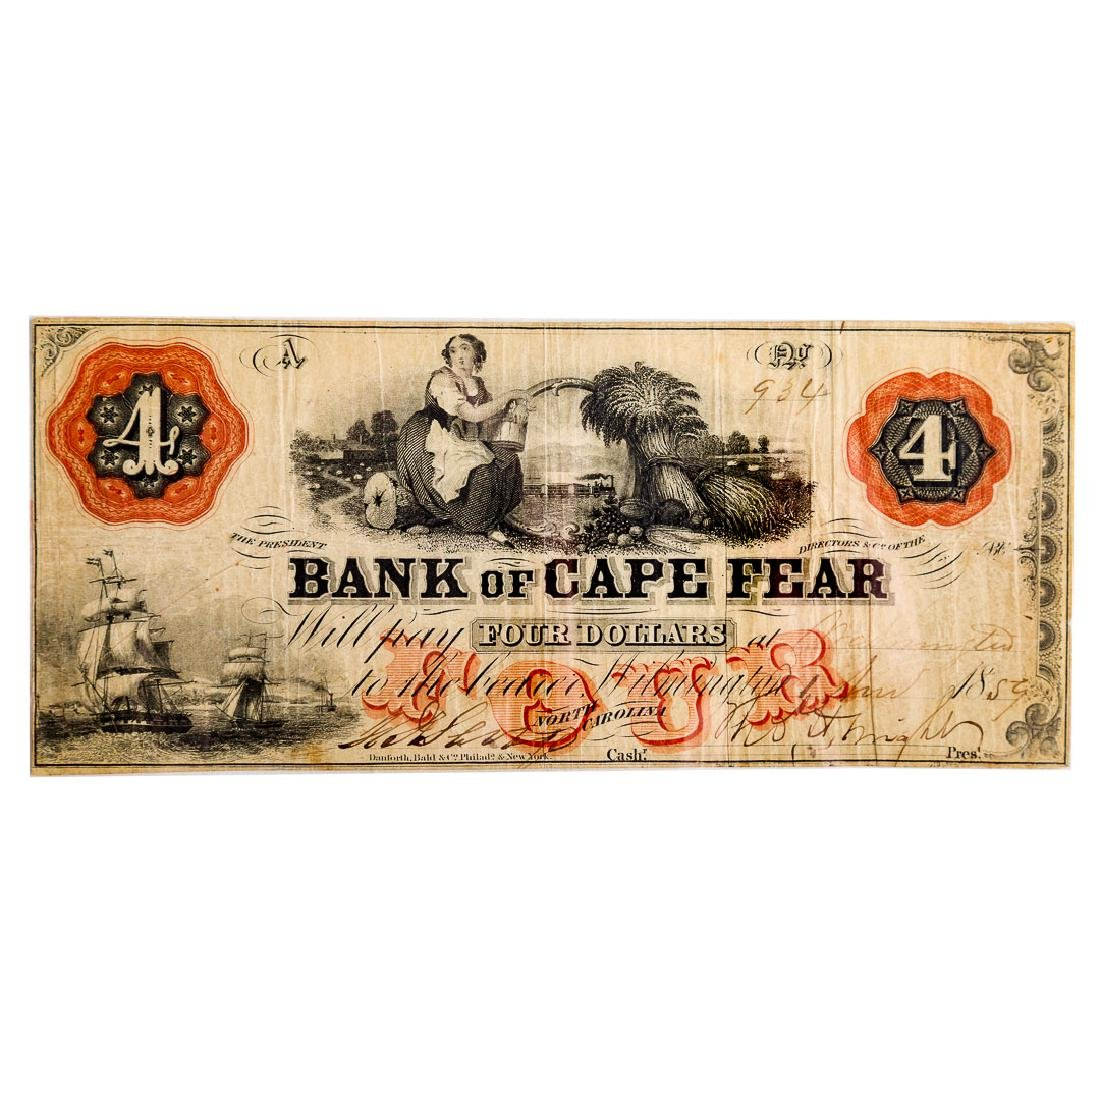 [US] $4 Bank of Cape Fear, 11/1/1859 Wilmington